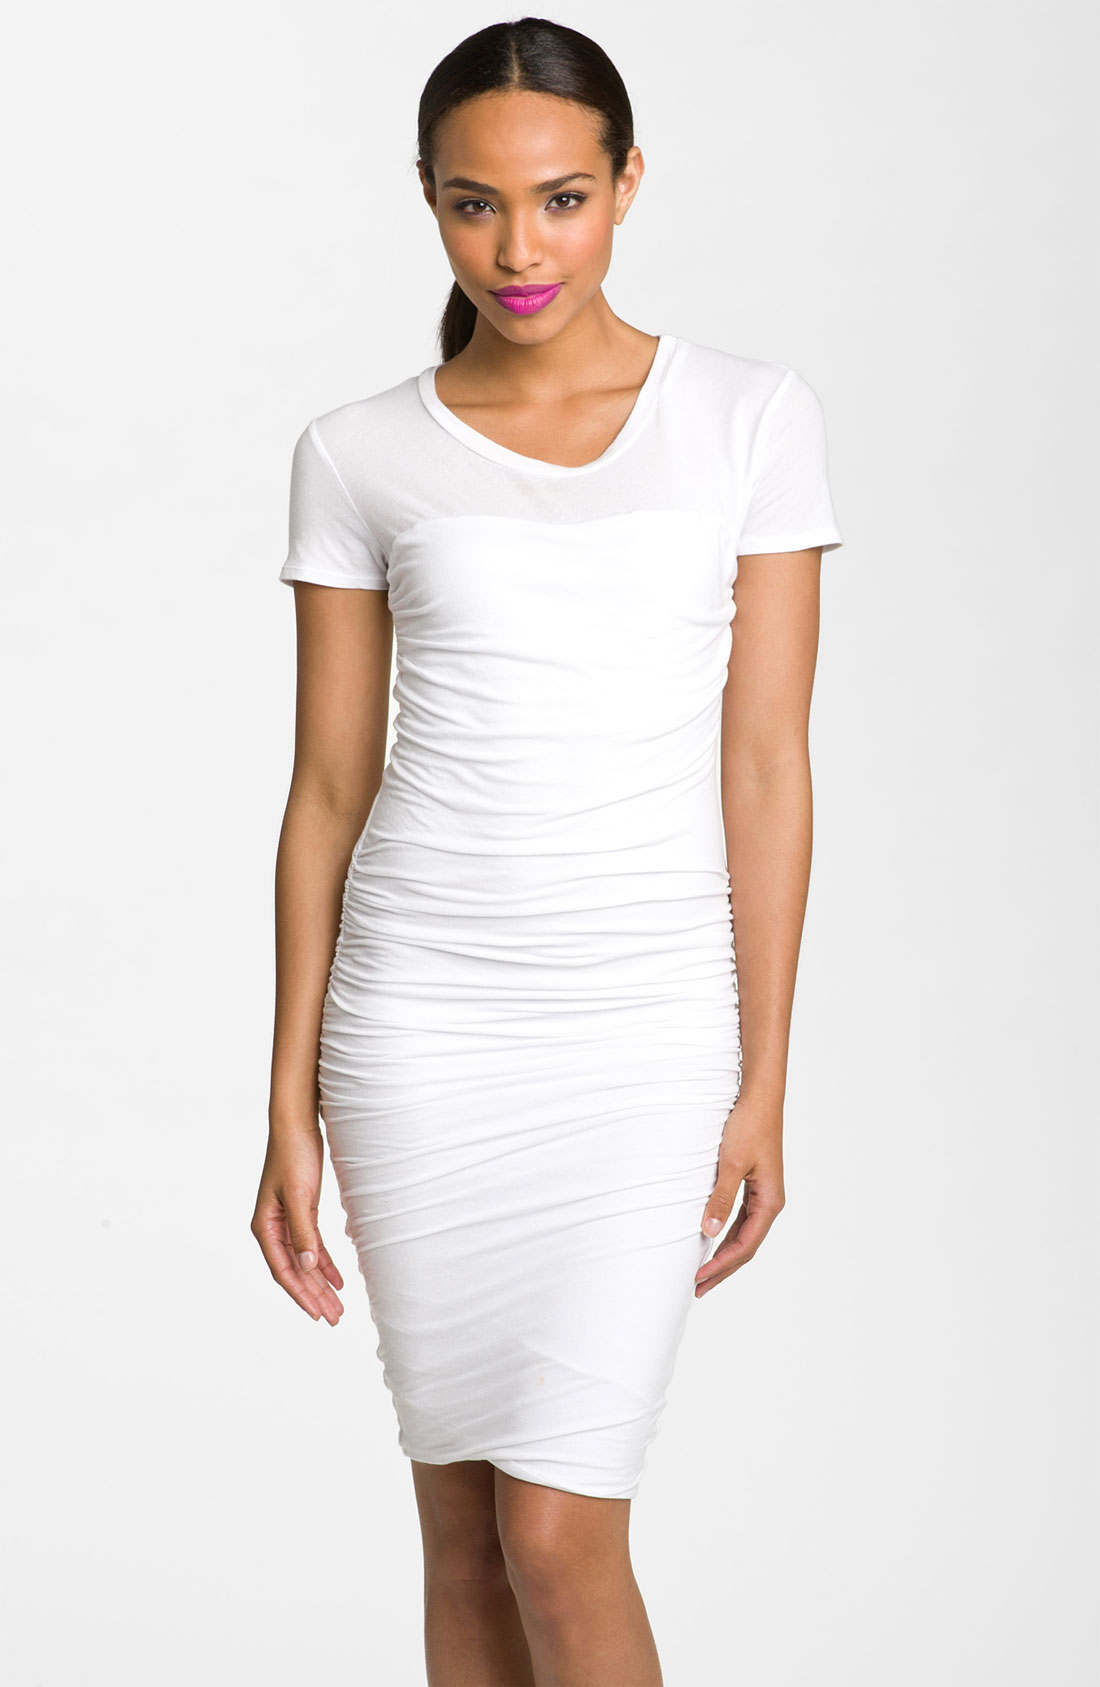 James perse ruched tshirt dress in white lyst for James perse t shirts sale